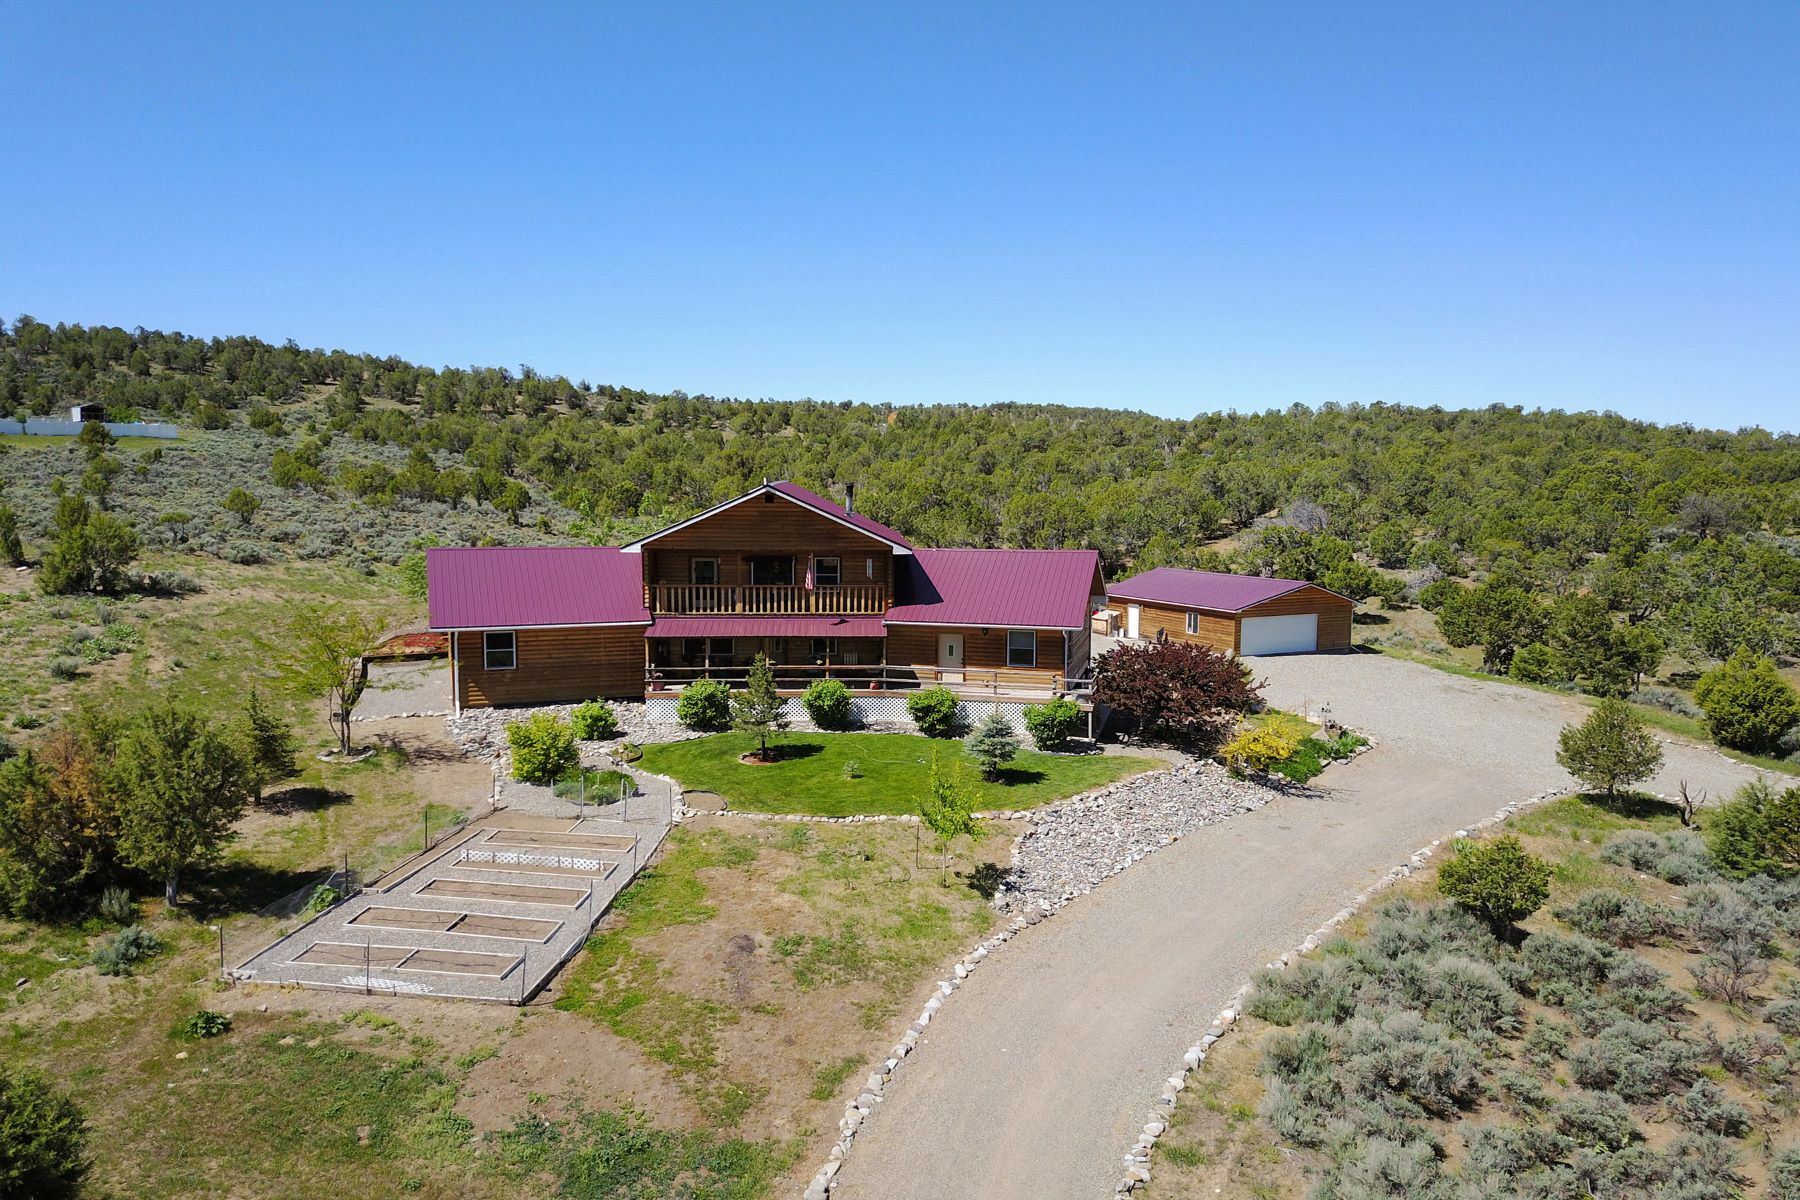 Single Family Home for Sale at Crawford Home on 4+ Acres 40407 D Road Crawford, Colorado 81415 United States